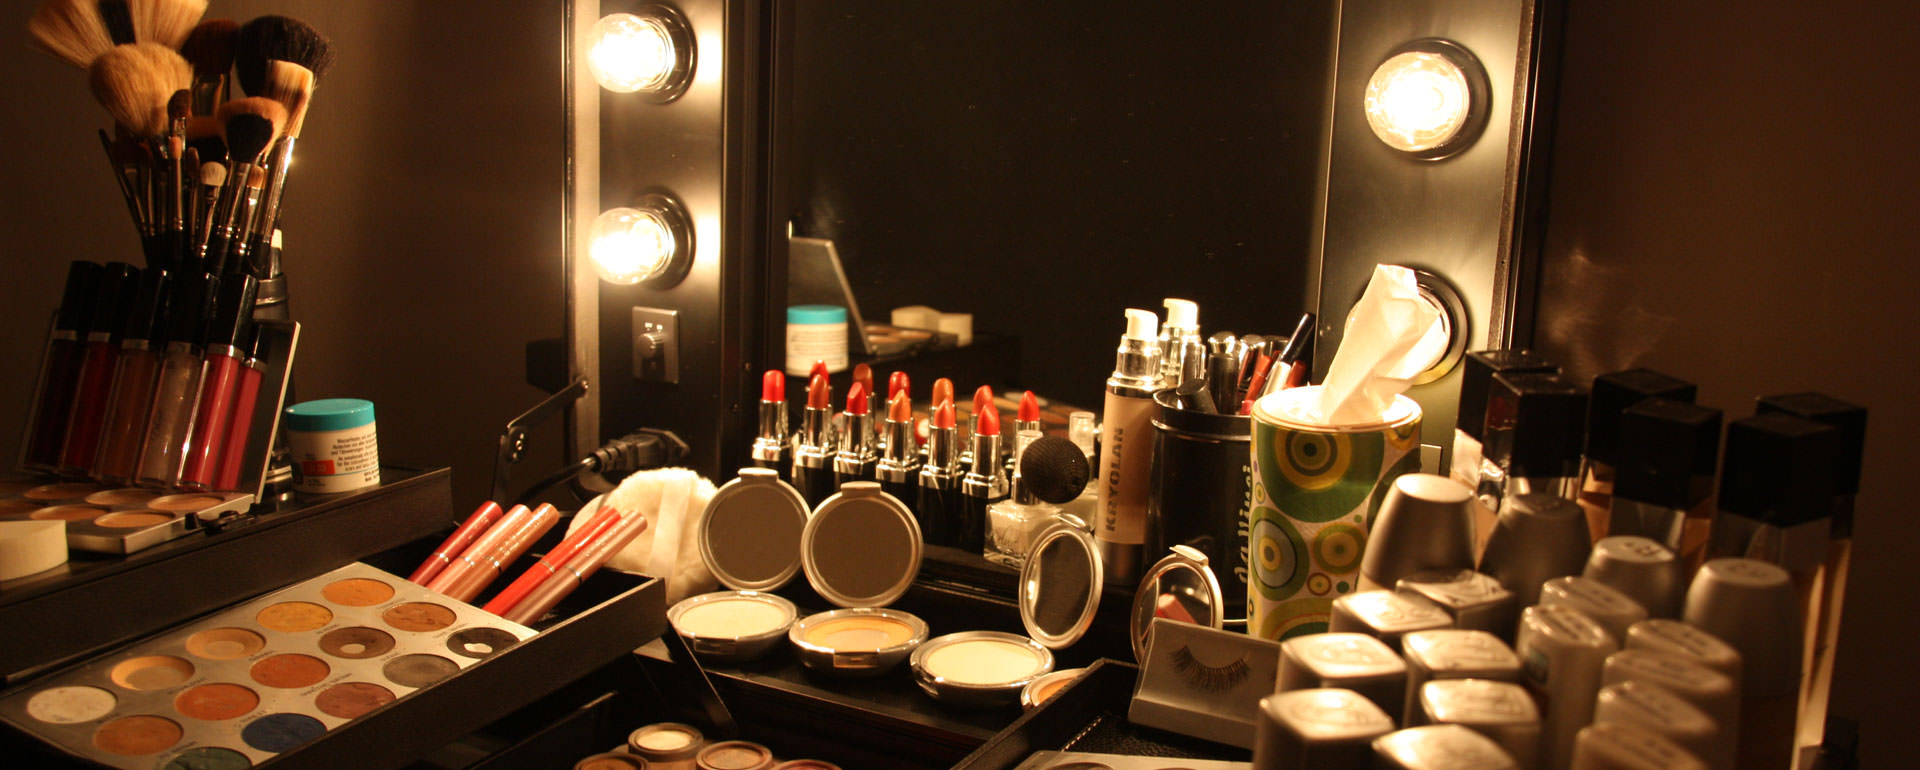 header-movies-special-make-up-IMG_0344-1920x770.jpg